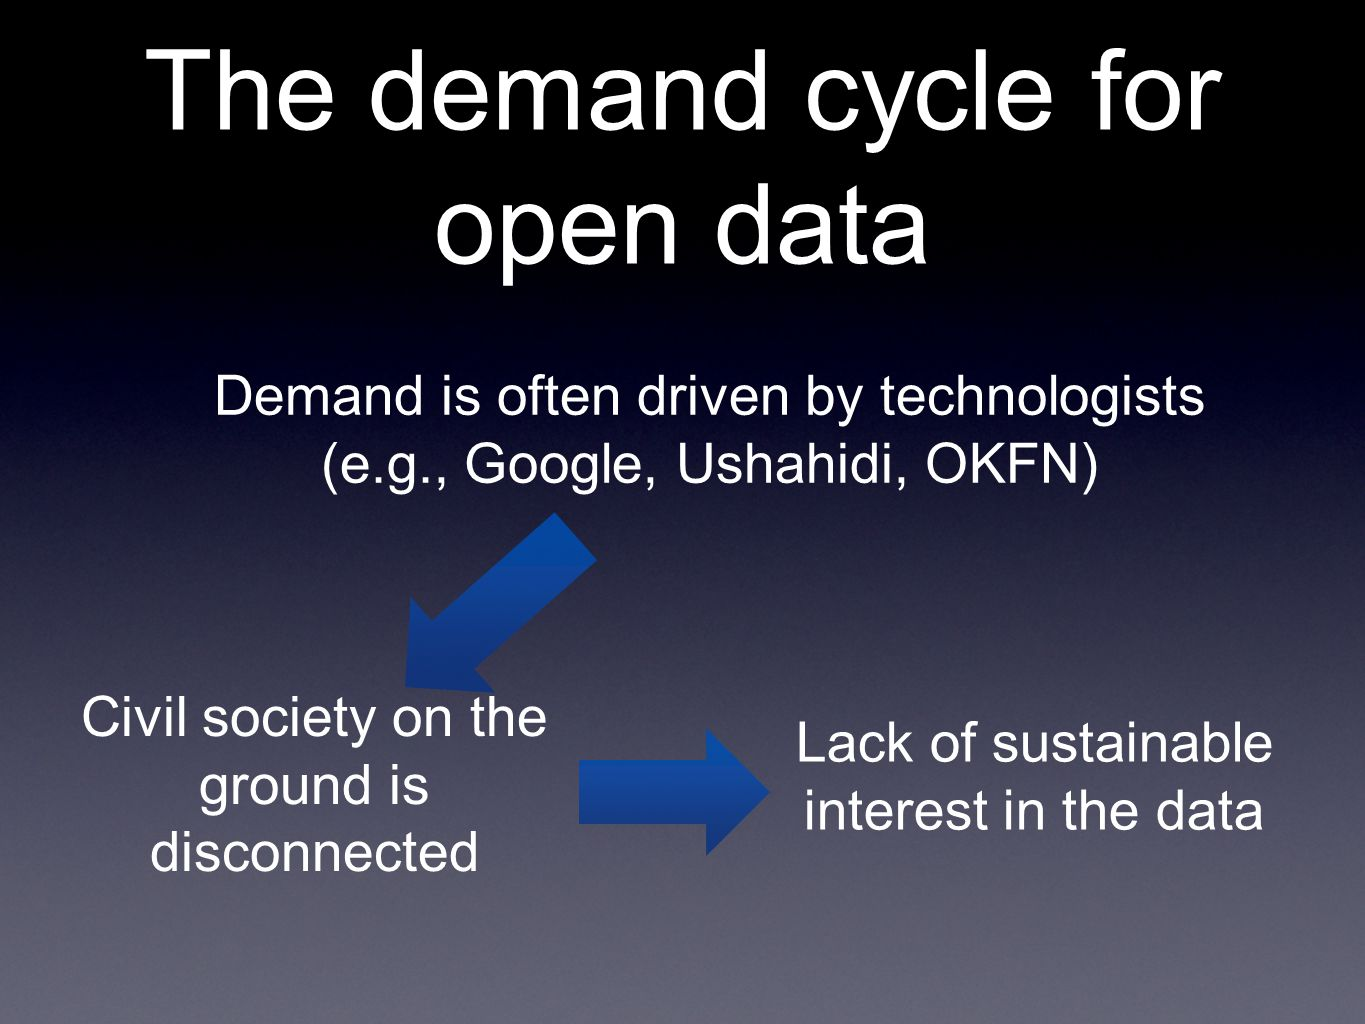 The demand cycle for open data Demand is often driven by technologists (e.g., Google, Ushahidi, OKFN) Civil society on the ground is disconnected Lack of sustainable interest in the data